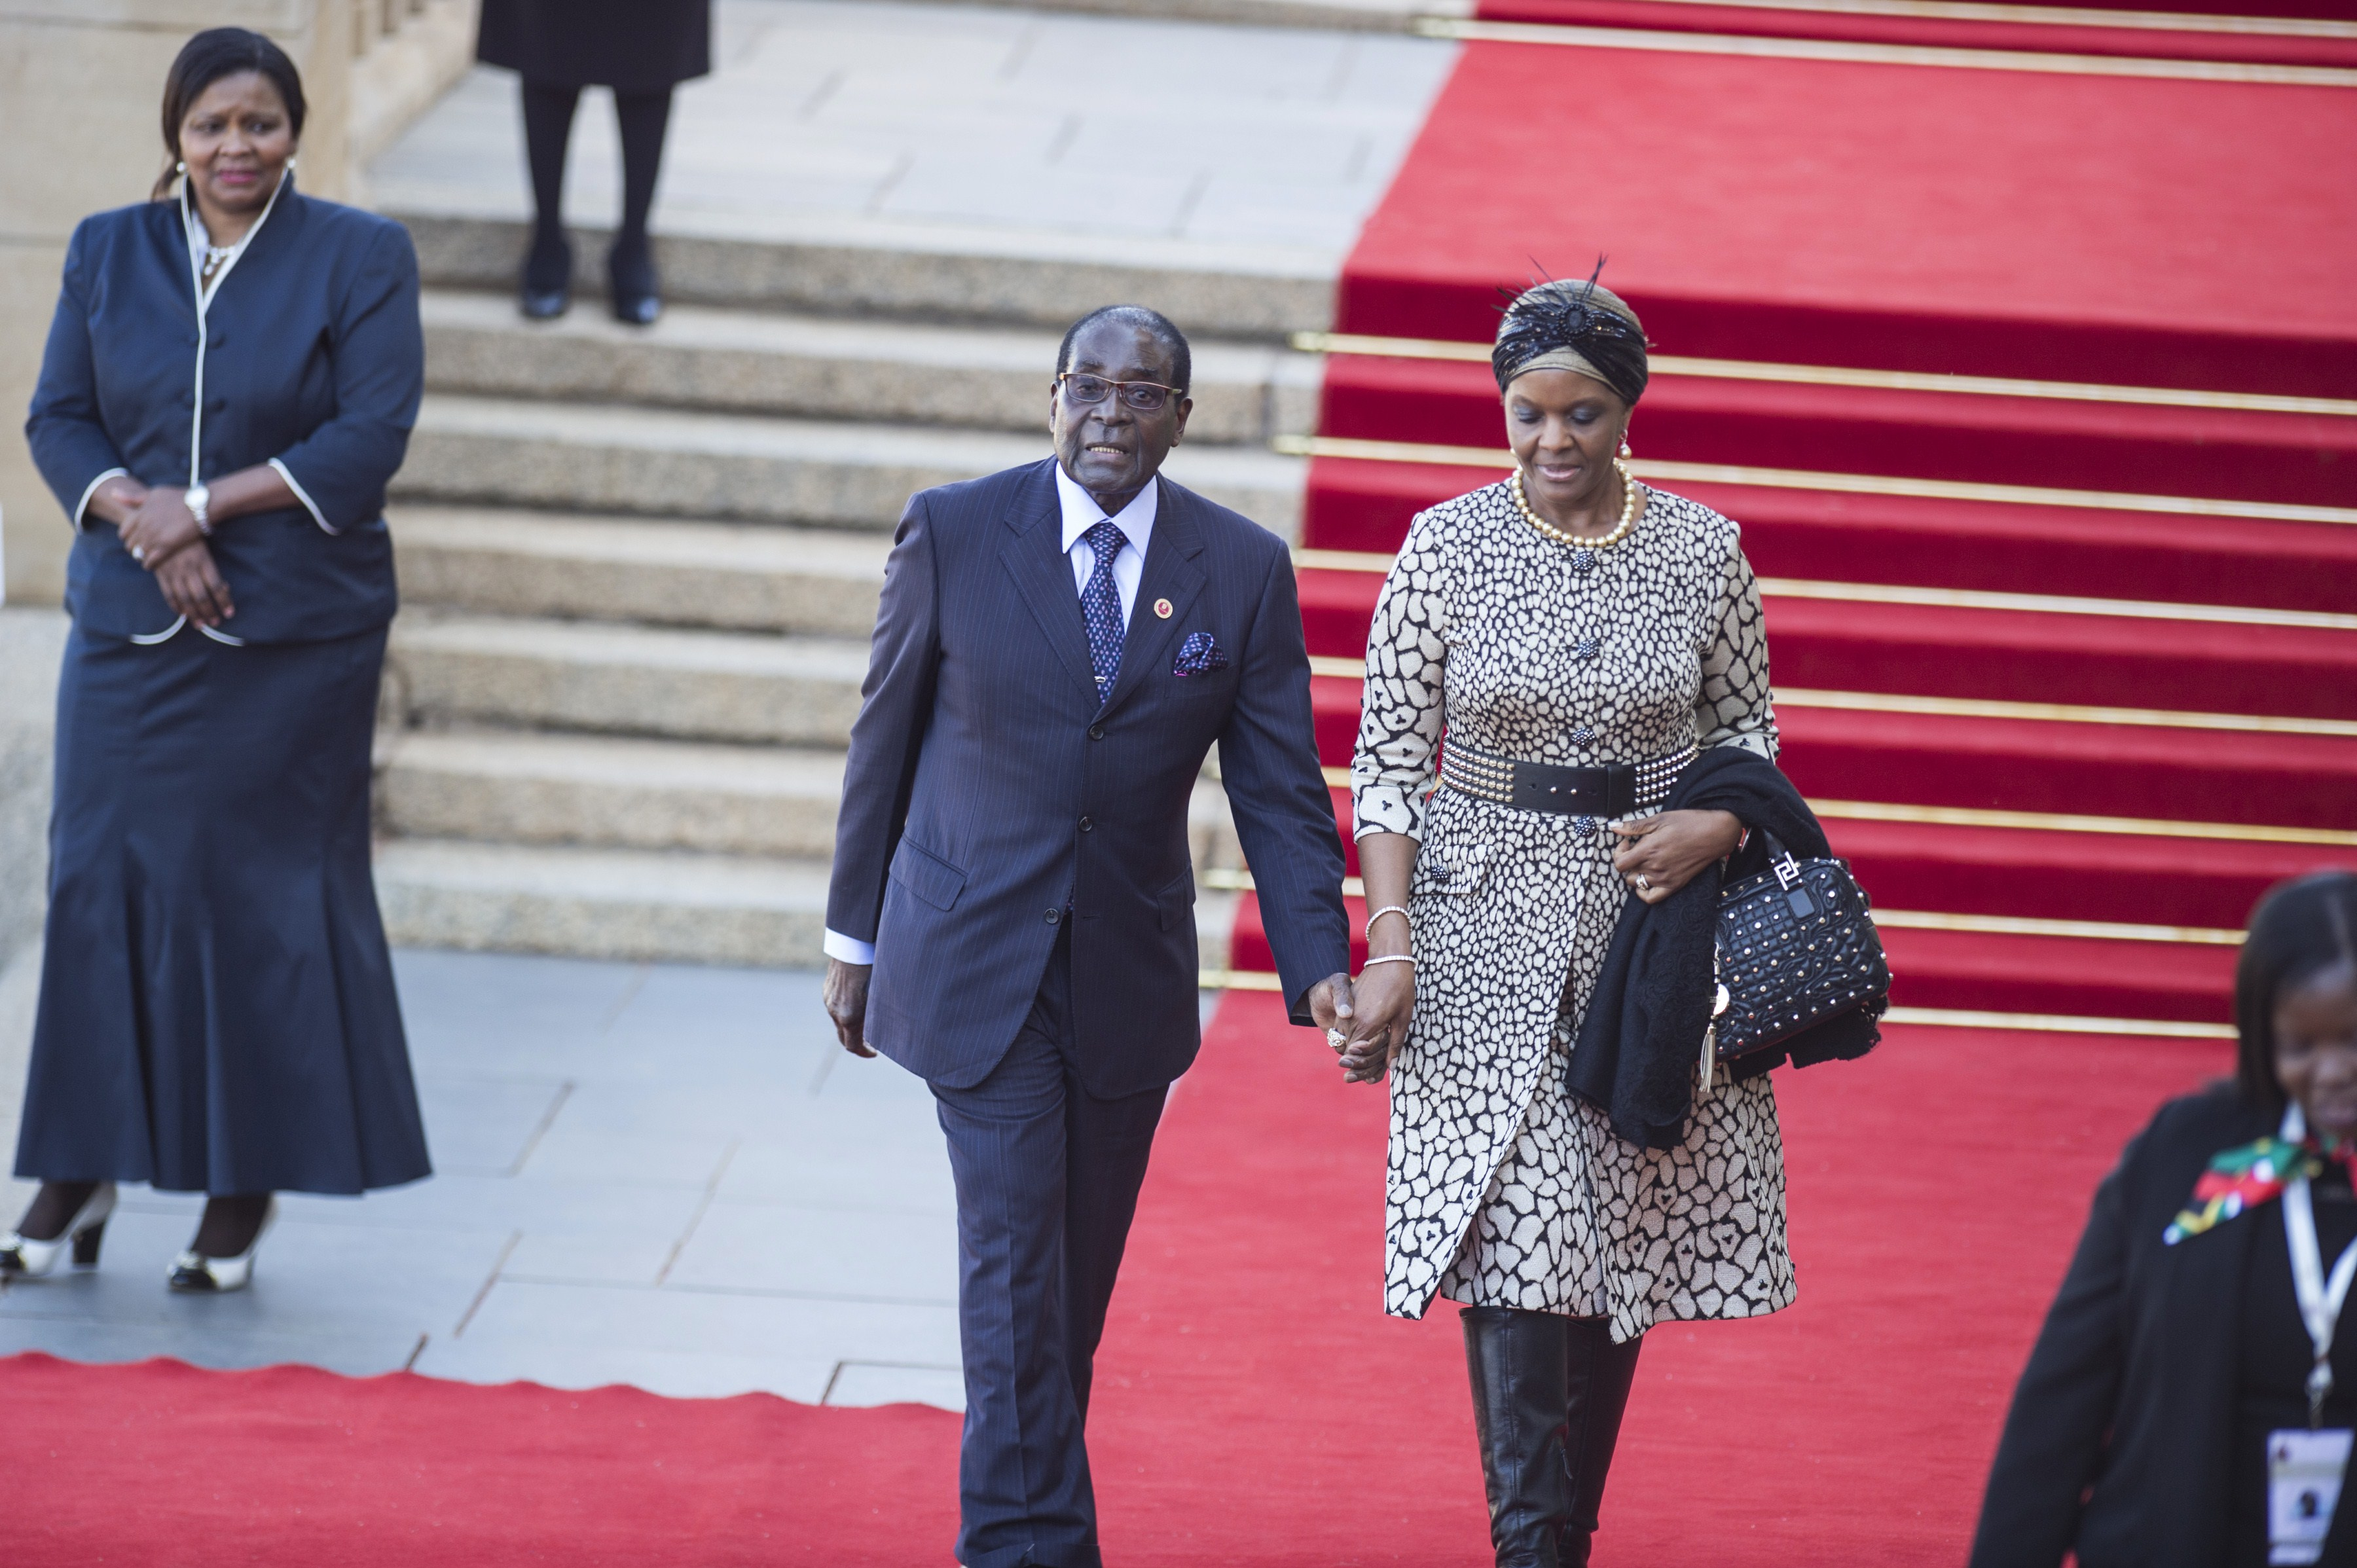 Zimbabwe 39 S President Robert Mugabe 39 Replaced 39 By Wife Grace Mugabe In 39 Palace Coup 39 Opposition